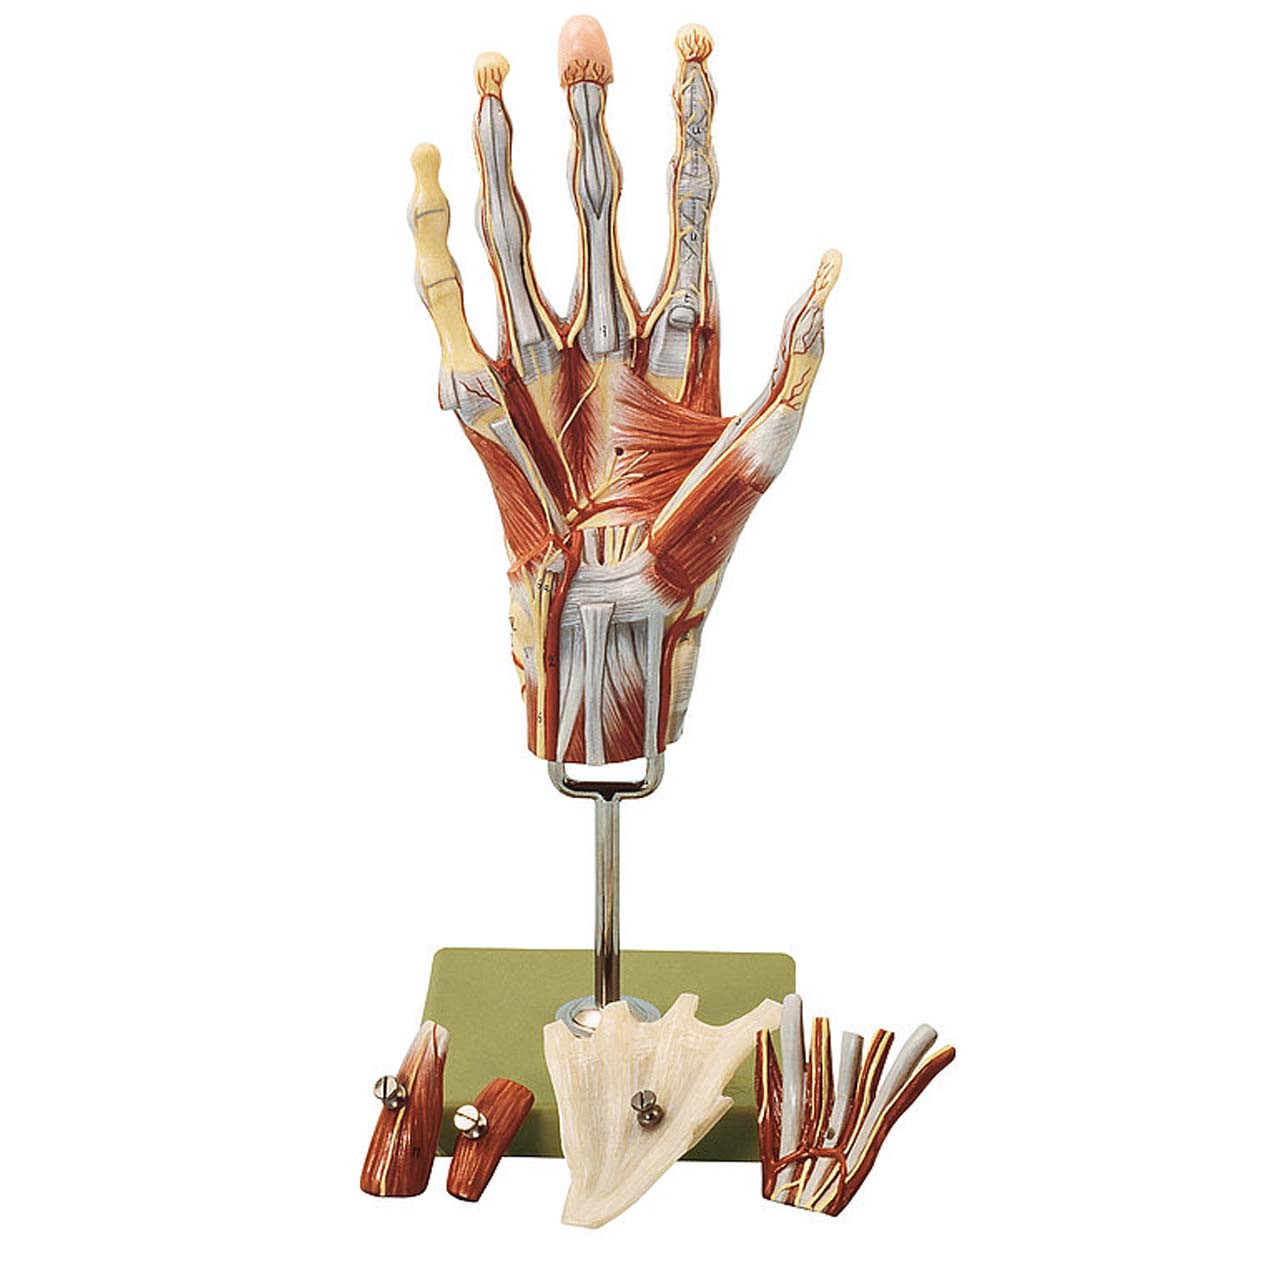 Muscles of the Hand with Base of Fore-Arm